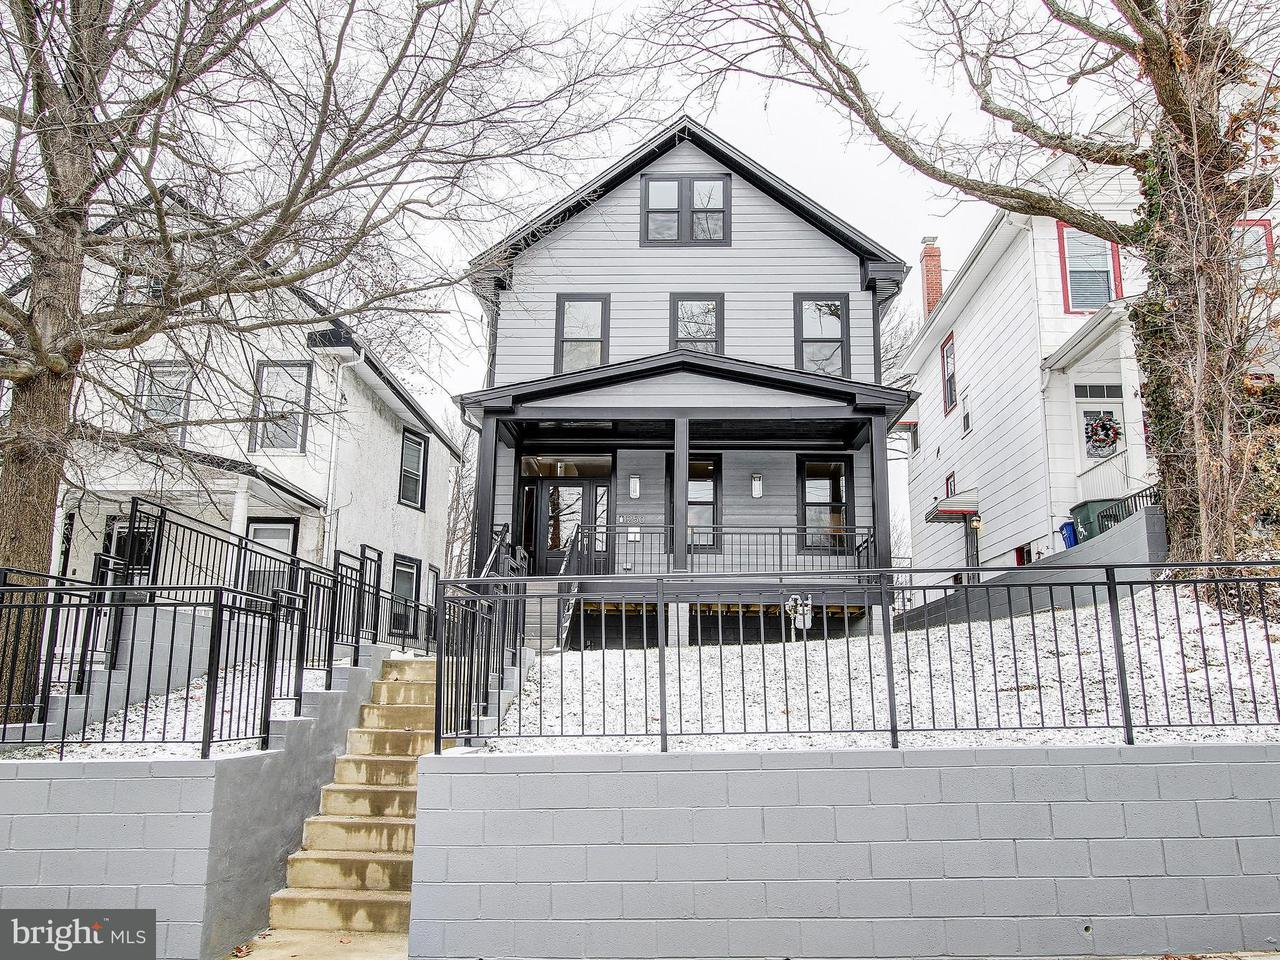 Single Family Home for Sale at 1250 HAMLIN ST NE 1250 HAMLIN ST NE Washington, District Of Columbia 20017 United States